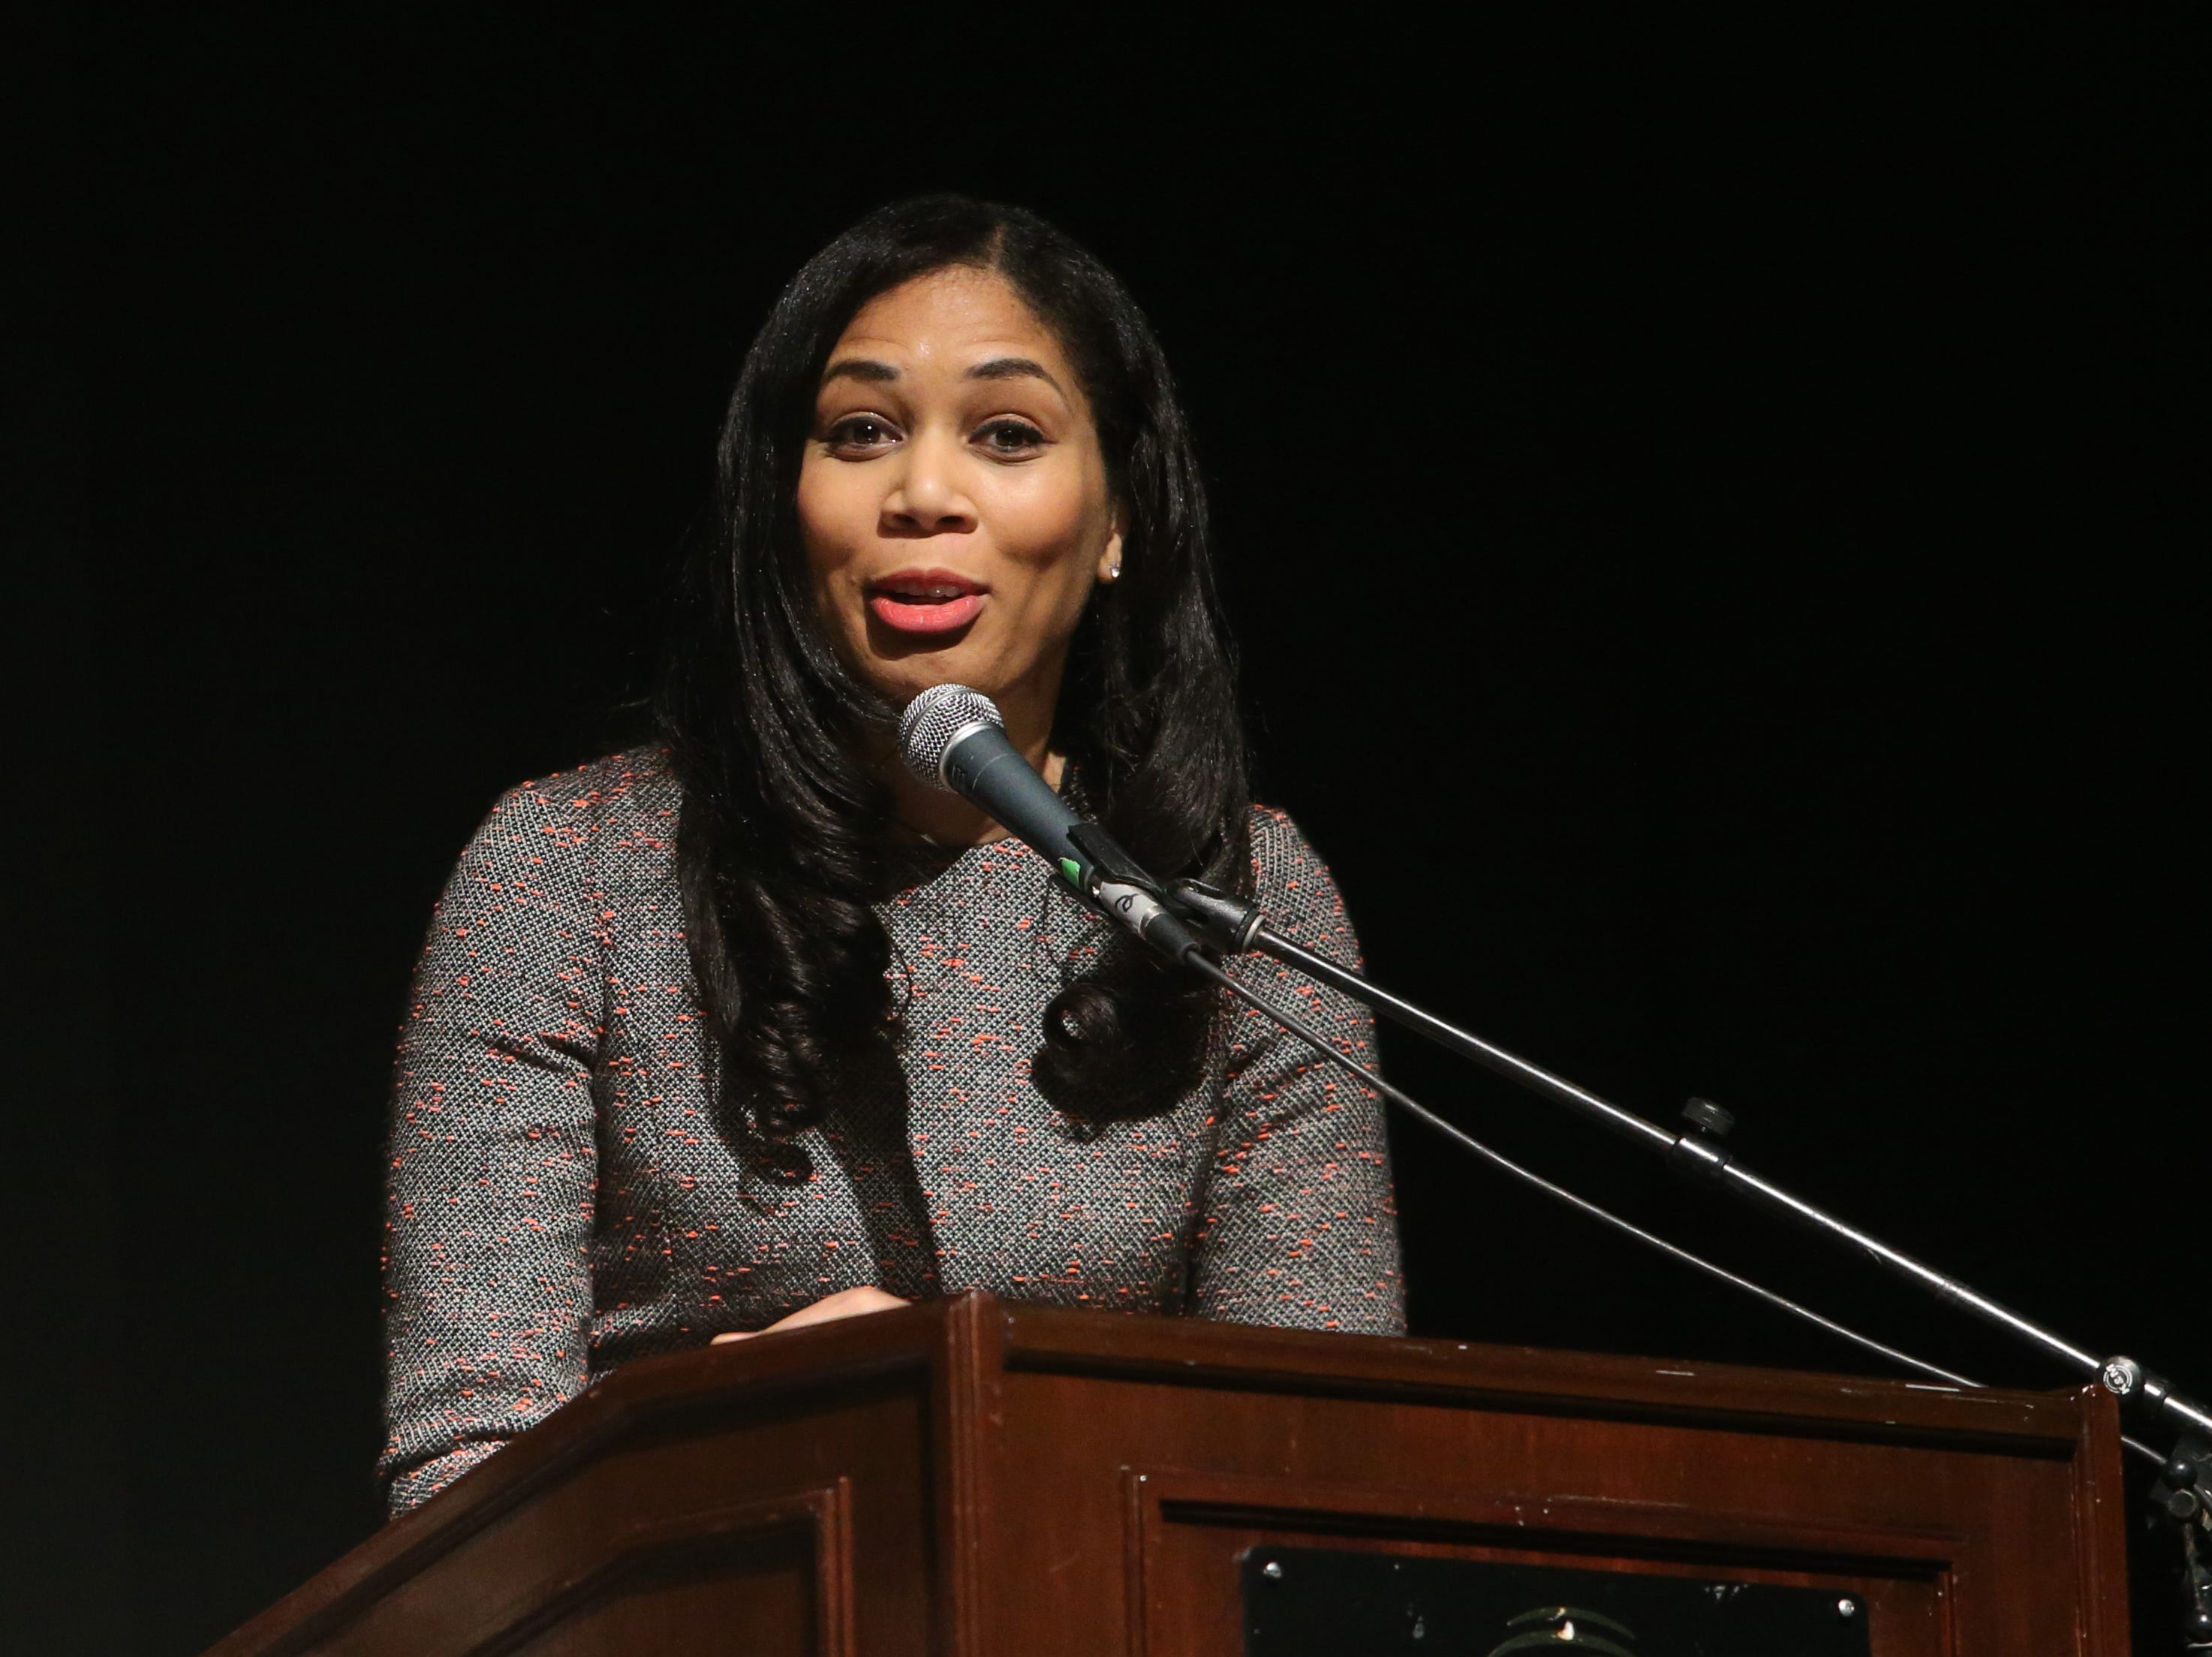 Keynote speaker Kimbriell Kelly speaks during the Martin Luther King Jr. Breakfast in the City of Poughkeepsie on January 25, 2019. Kelly is an investigative journalist for the Washington Post and spoke of her mother's experience growing up in the Jim Crowe south.